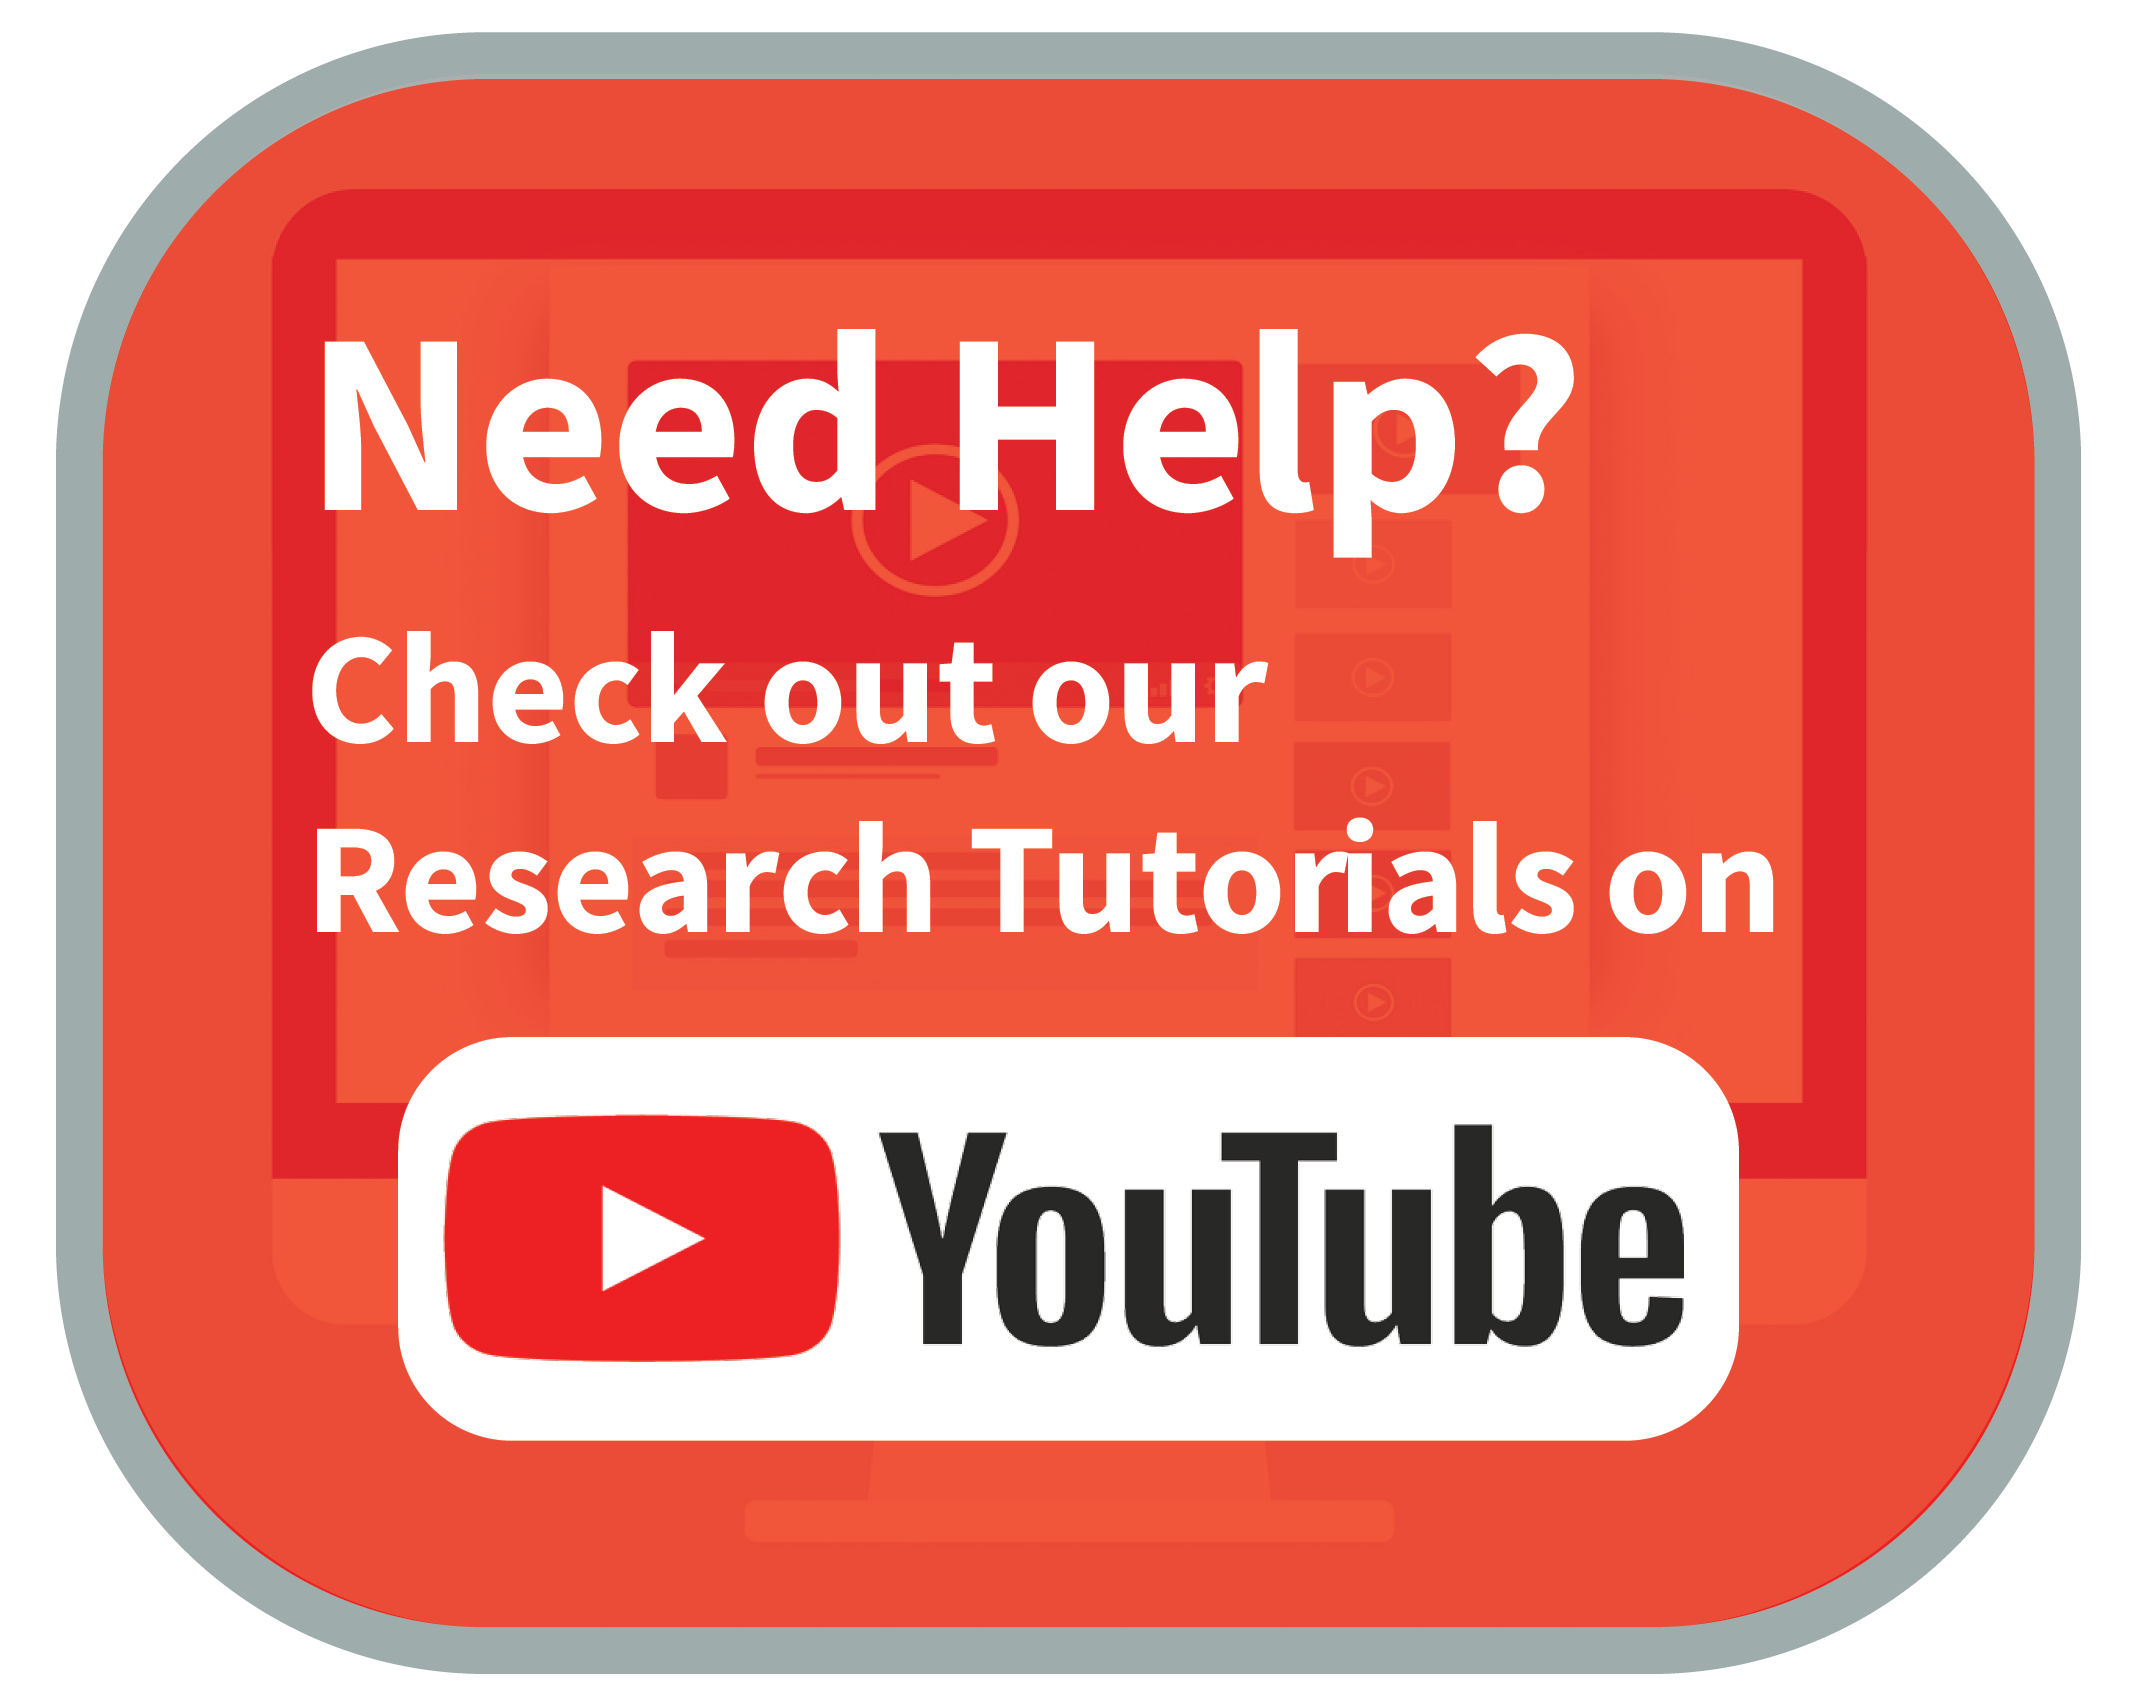 Need Help? Check out Research Tutorials on YouTube